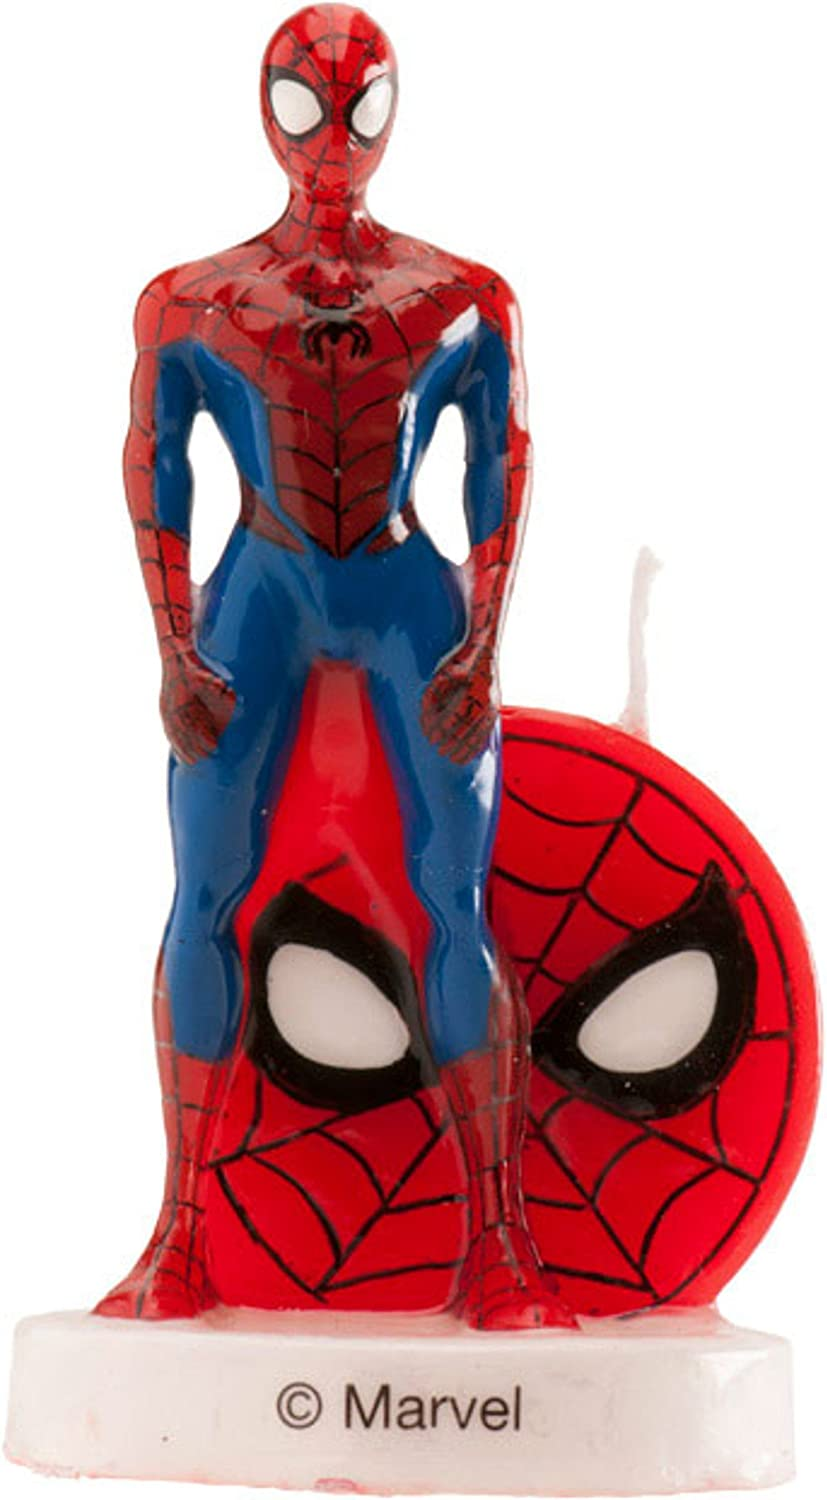 Swell Dekora Spiderman 3D Birthday Cake Candle Amazon Co Uk Toys Games Personalised Birthday Cards Paralily Jamesorg